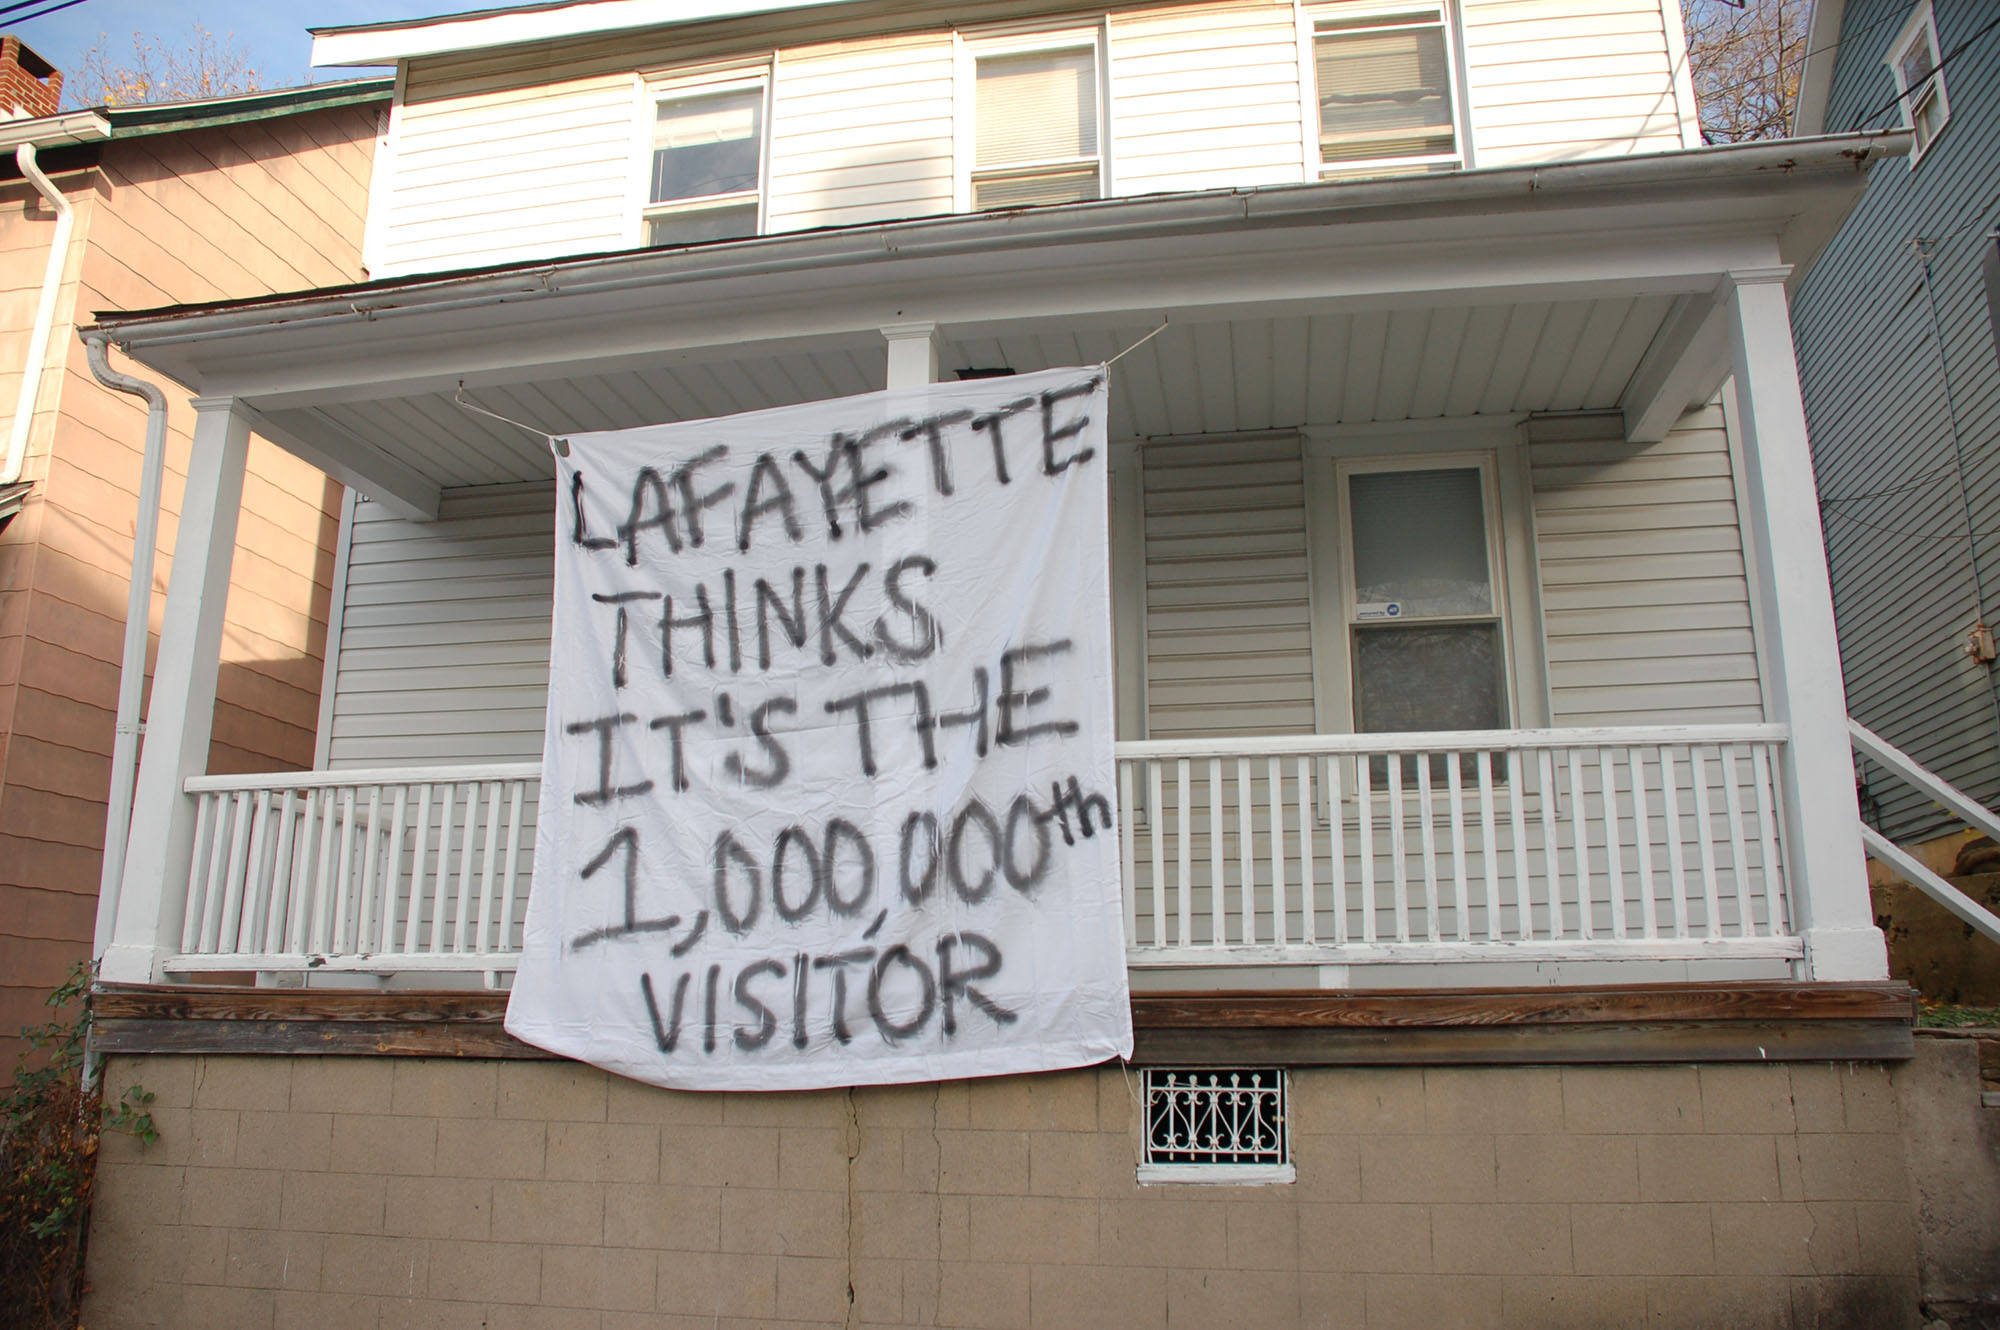 "A sign reading ""Lafayette thinks it's the 1,000,000th visitor"" hangs on a house on Montclair Avenue on Nov. 15, 2016. The tradition of hanging banners on off-campus houses has been present at Lehigh for many years. (Samantha Tomaszewski/B&W Staff)"